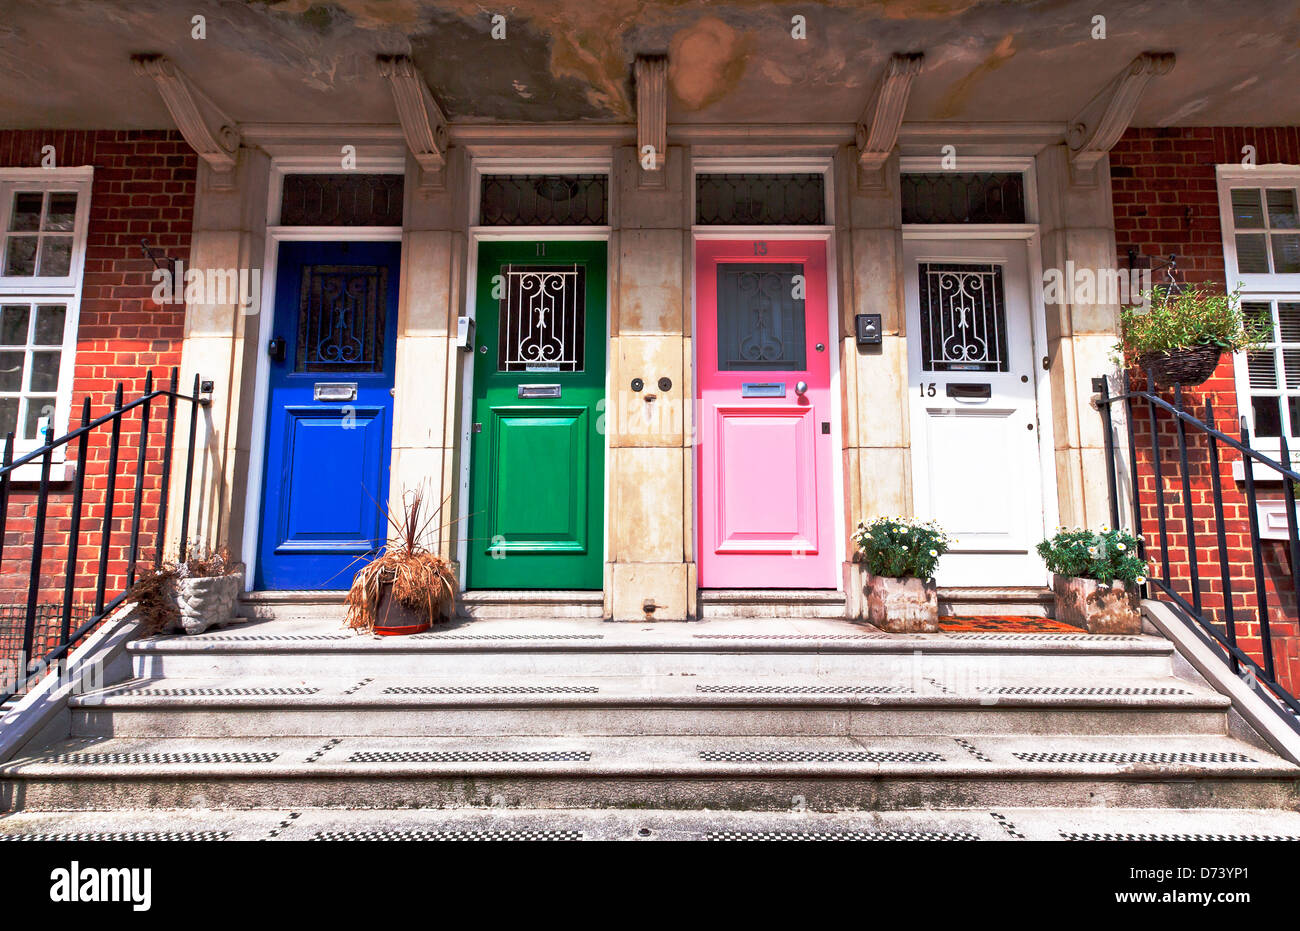 Four colored doors de Walden Street London England UK Europe : street doors images - pezcame.com